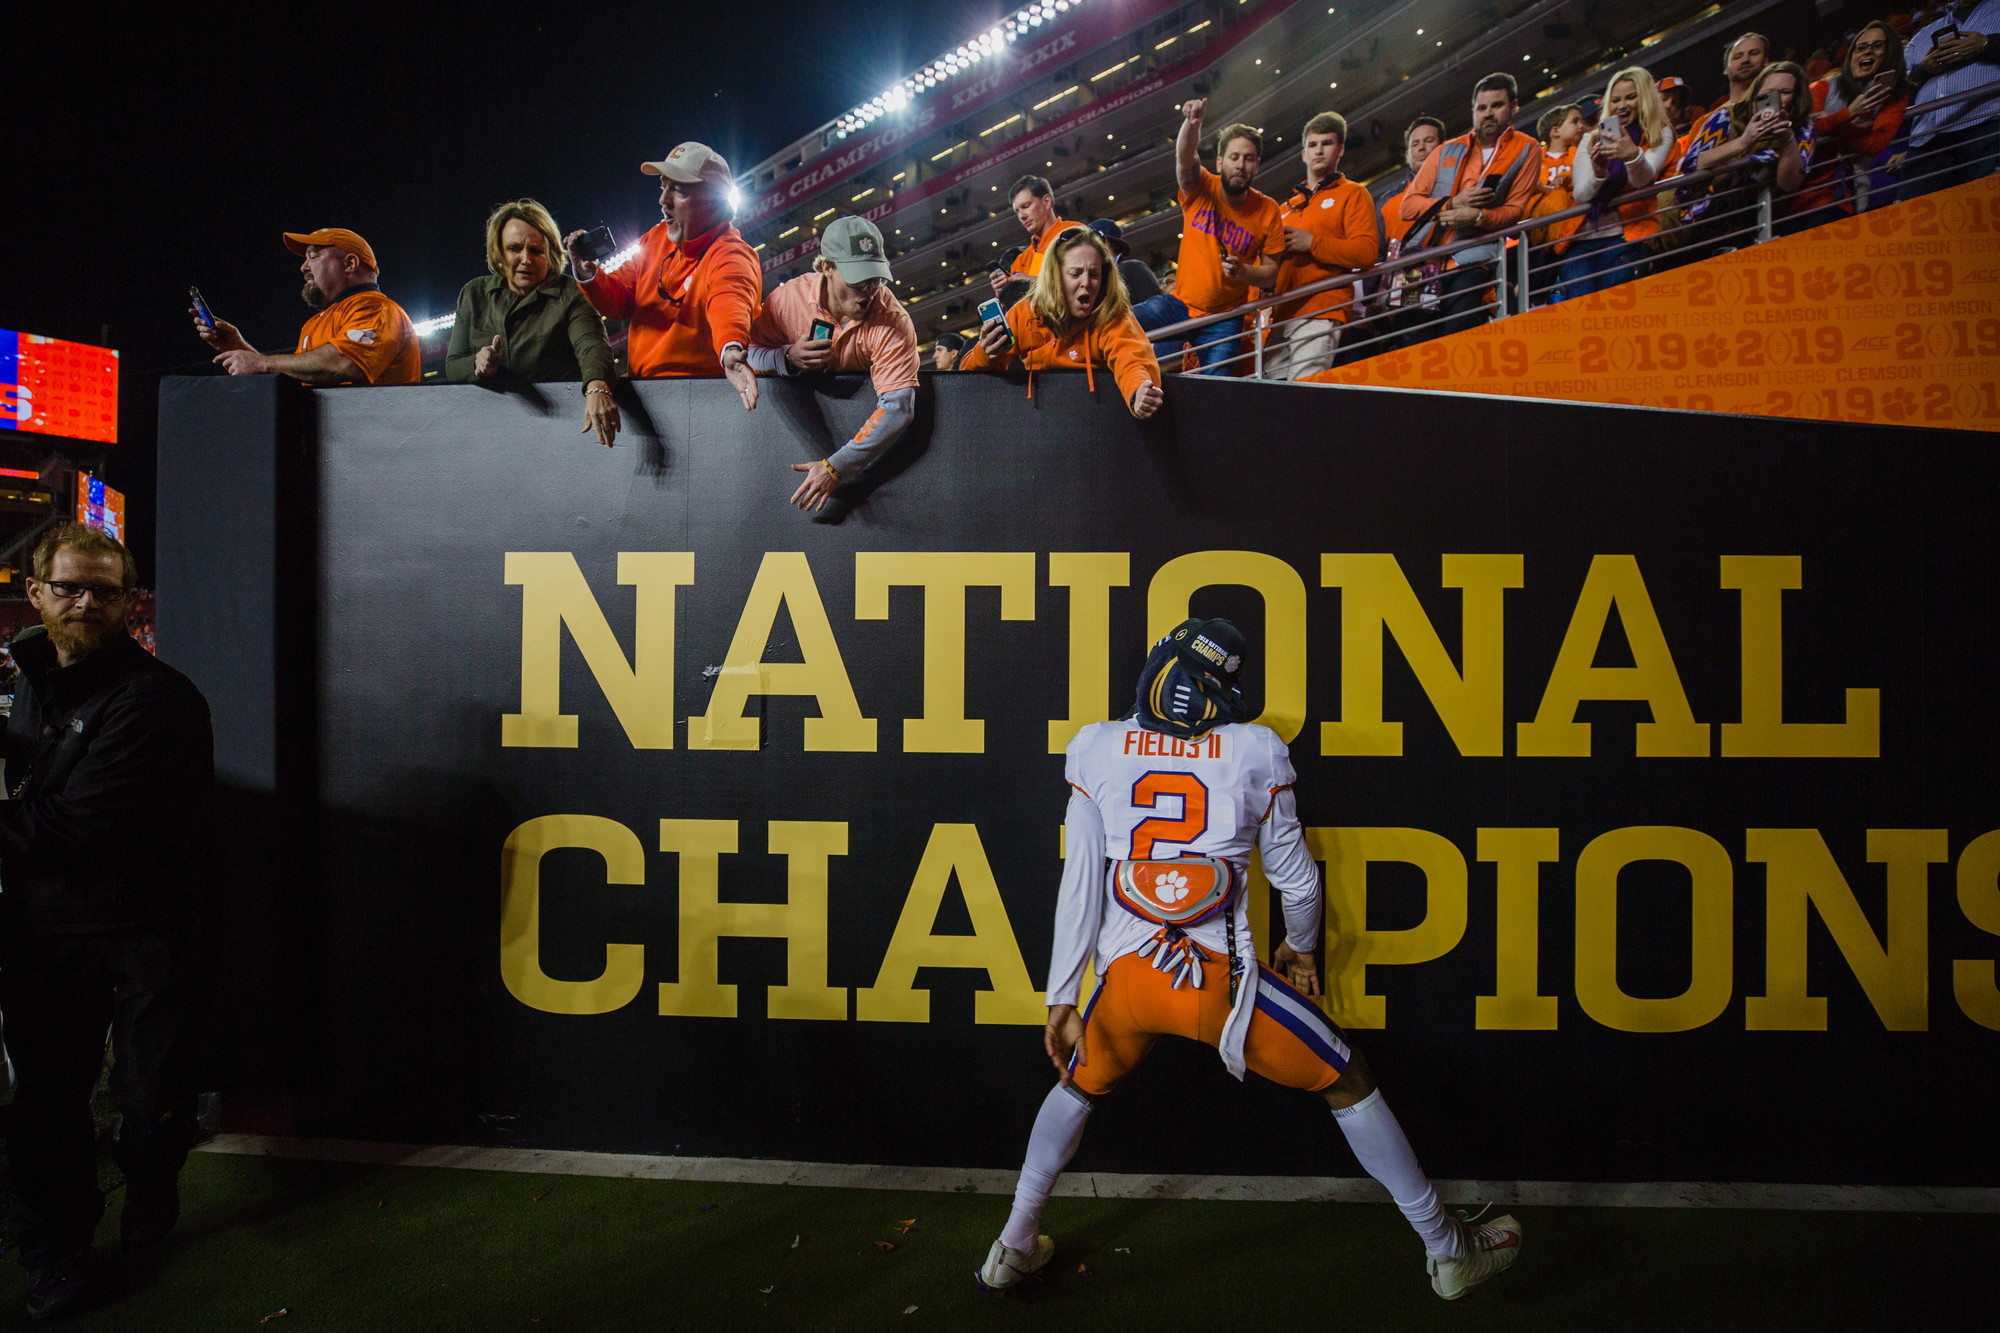 Clemson cornerback Mark Fields celebrates at Levi's Stadium in Santa Clara, California, on Monday, Jan. 7 after routing Alabama 44-16 to win the 2019 CFP National Championship.